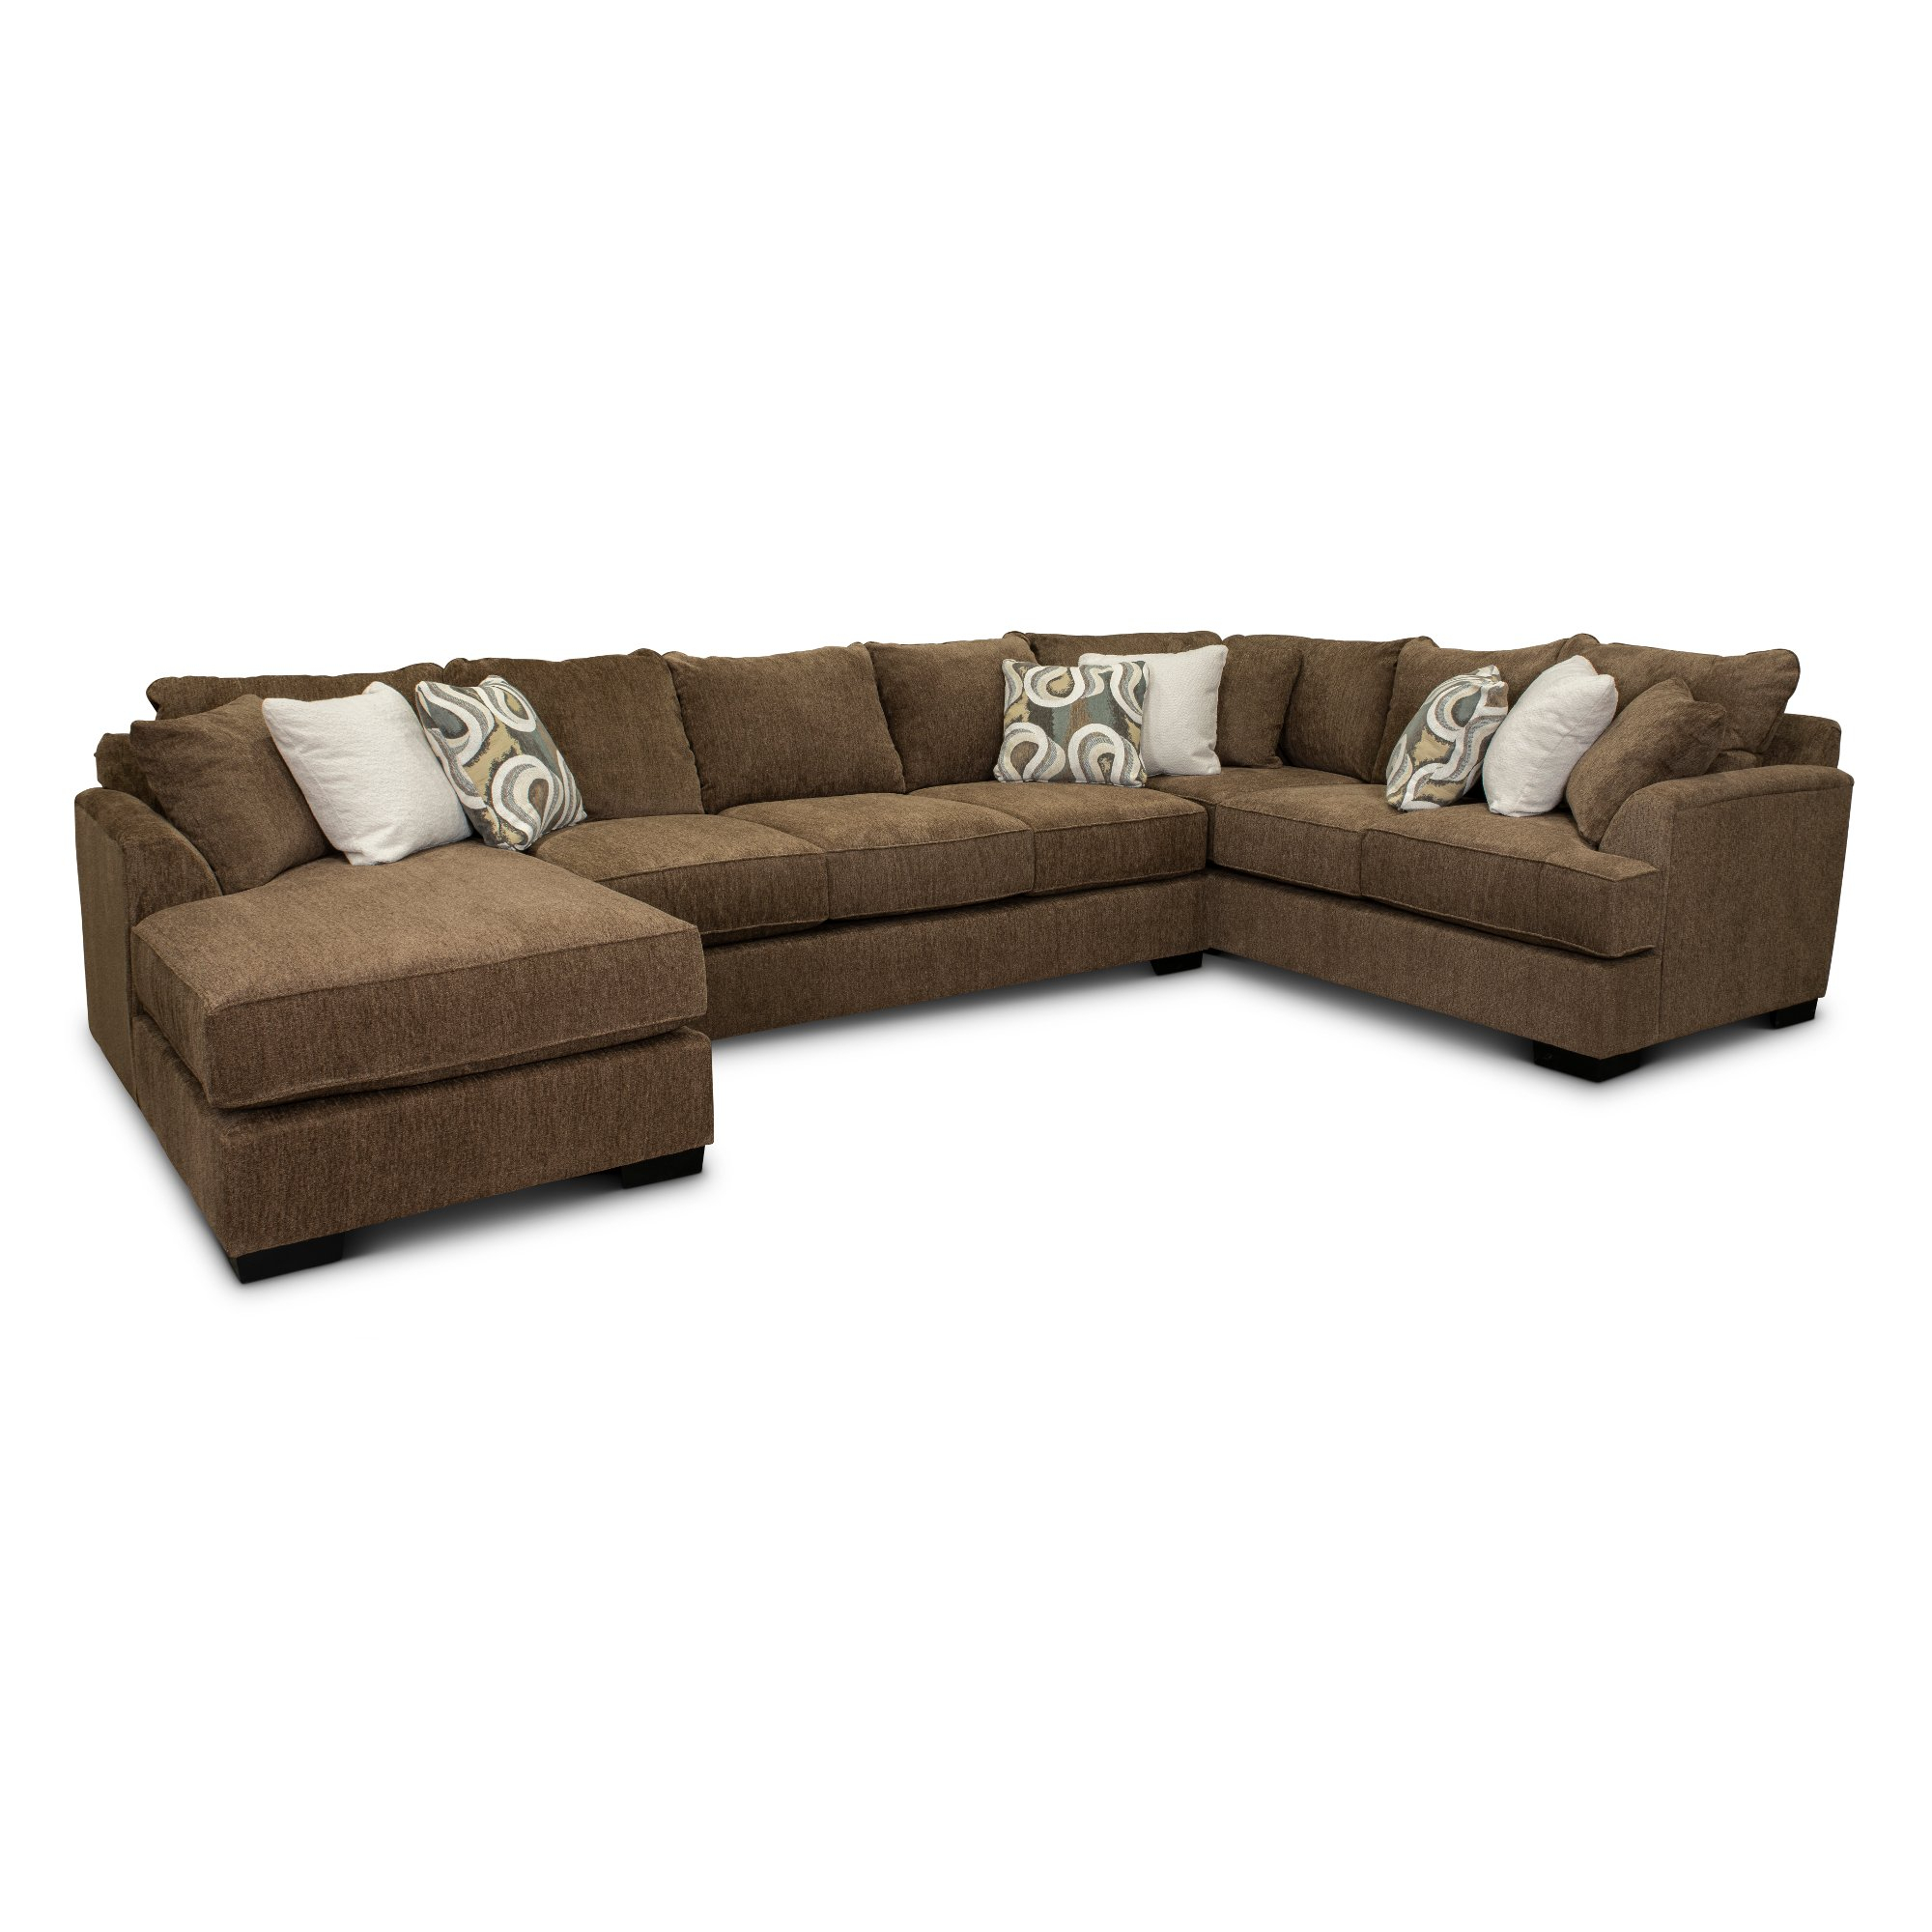 Brown 3 Piece Sectional Sofa With Laf Chaise – Tranquility Inside Norfolk Grey 3 Piece Sectionals With Laf Chaise (View 1 of 15)